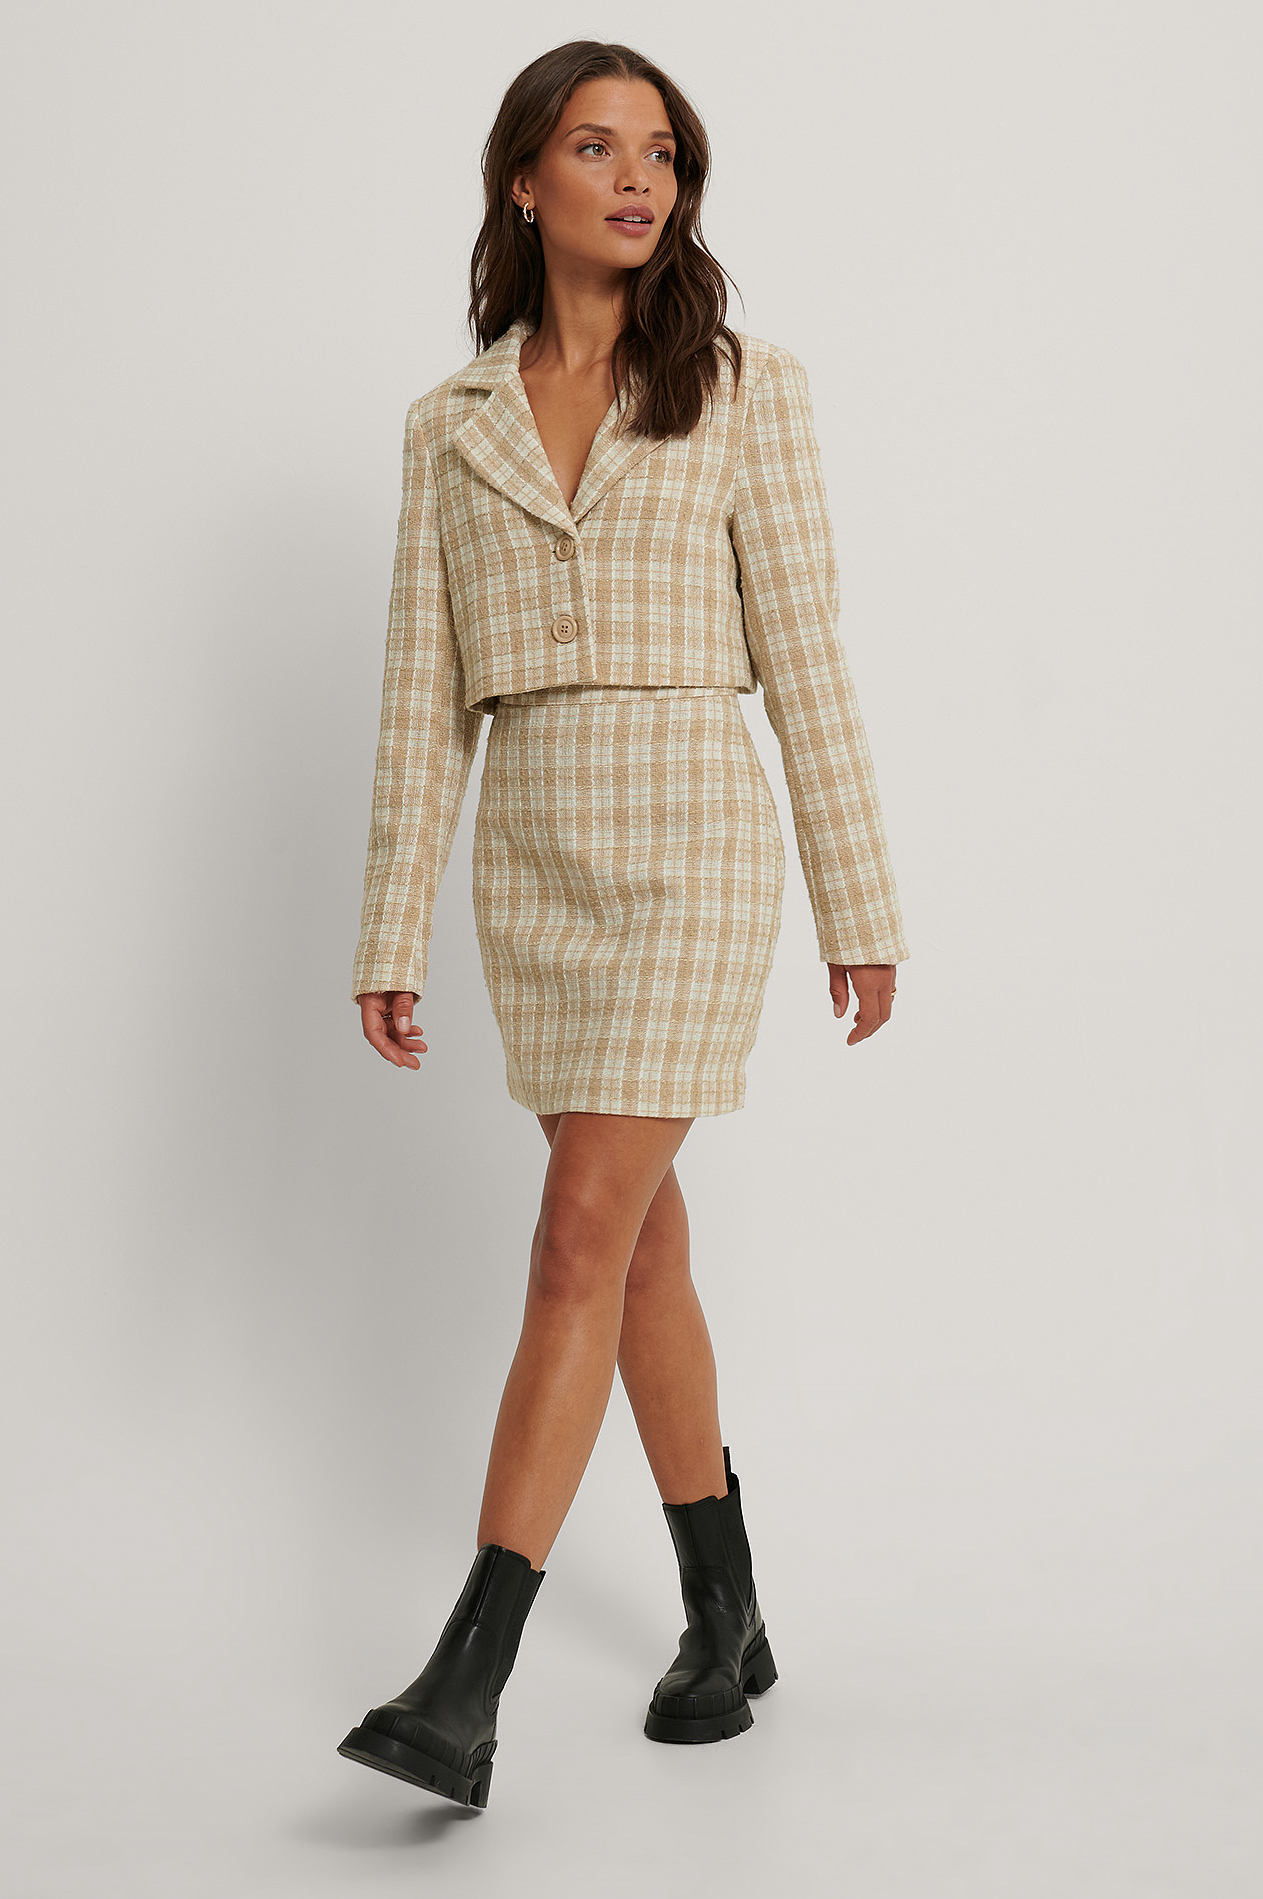 Cream Jupe En Tweed